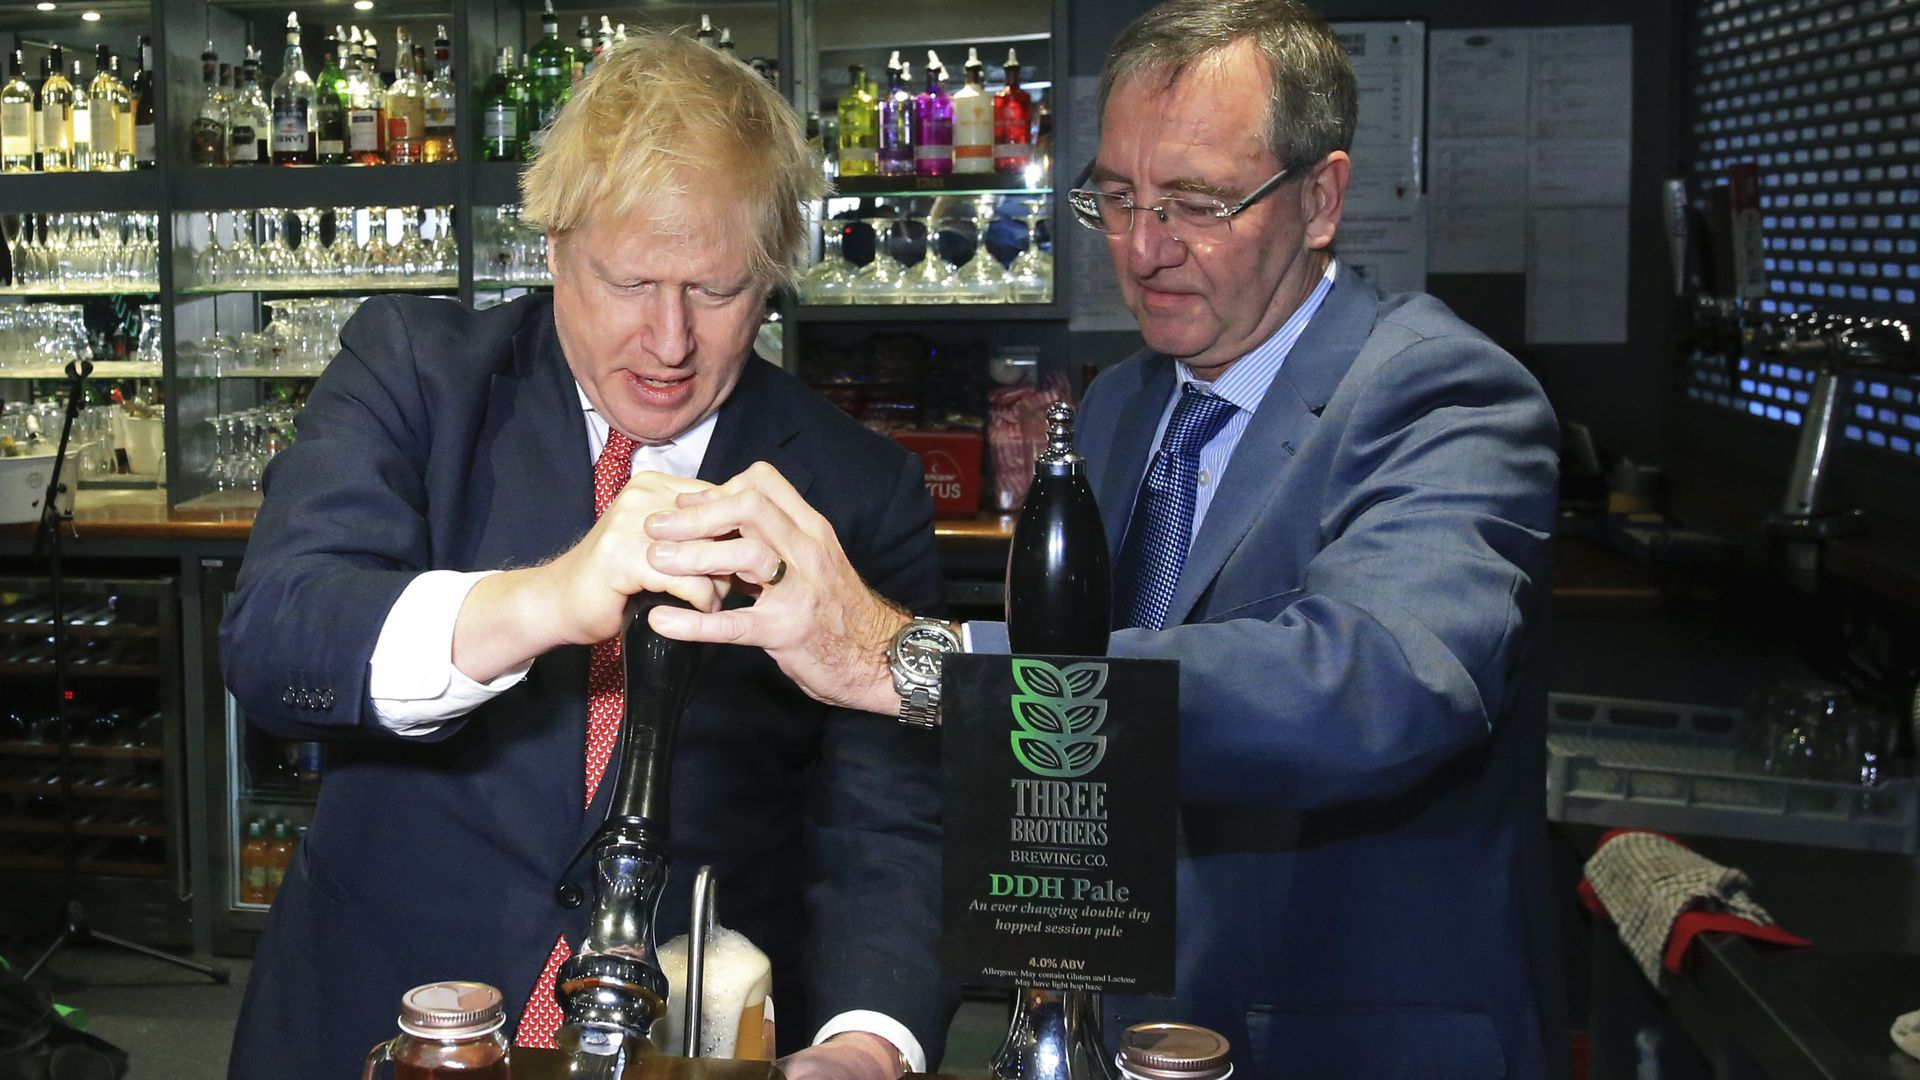 In this image, Boris Johnson stands behind the counter in a bar and pulls down a pint